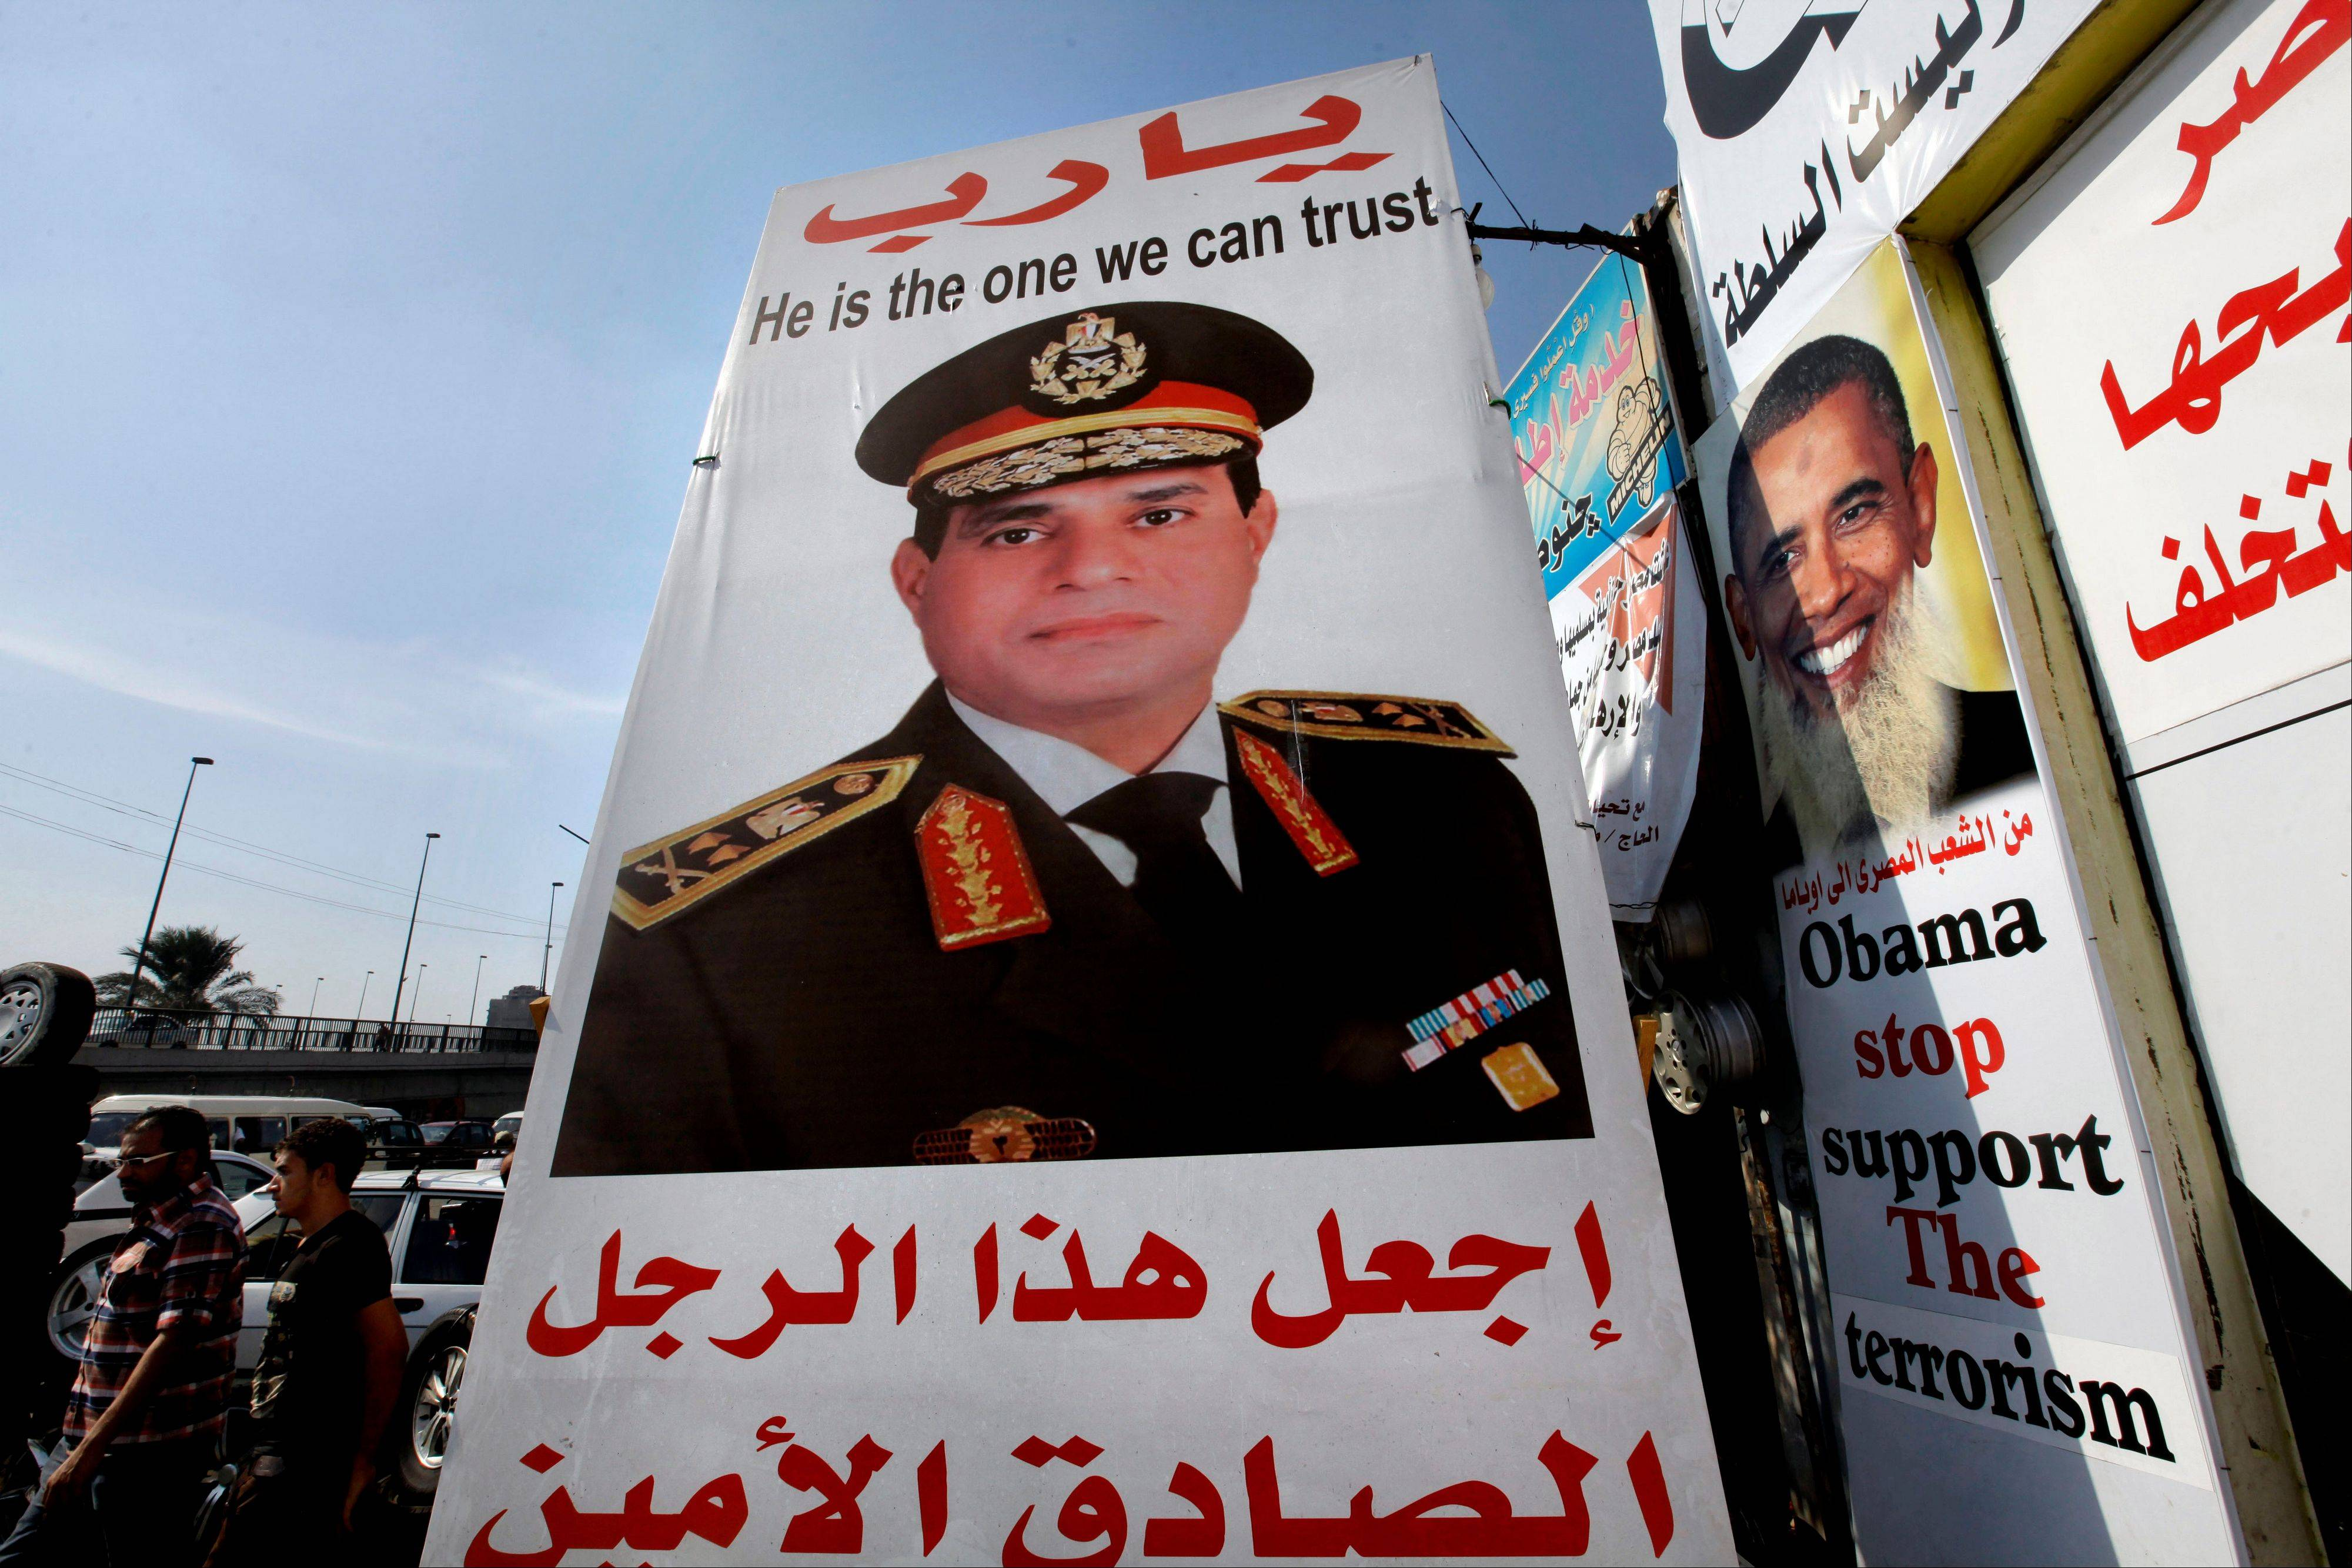 Egyptians walk behind a banner supporting Egyptian Army Chief Lt. Gen. Abdel-Fattah el-Sissi, center, with Arabic that reads, �God, keep this truthful honest man,� in Cairo, Egypt, Monday, Aug. 5, 2013. More than a month after Morsi�s ouster, thousands of the Islamist leader�s supporters remain camped out in two key squares in Cairo demanding his reinstatement. Egypt�s military-backed interim leadership has issued a string of warnings for them to disperse or security forces will move in, setting the stage for a potential showdown.